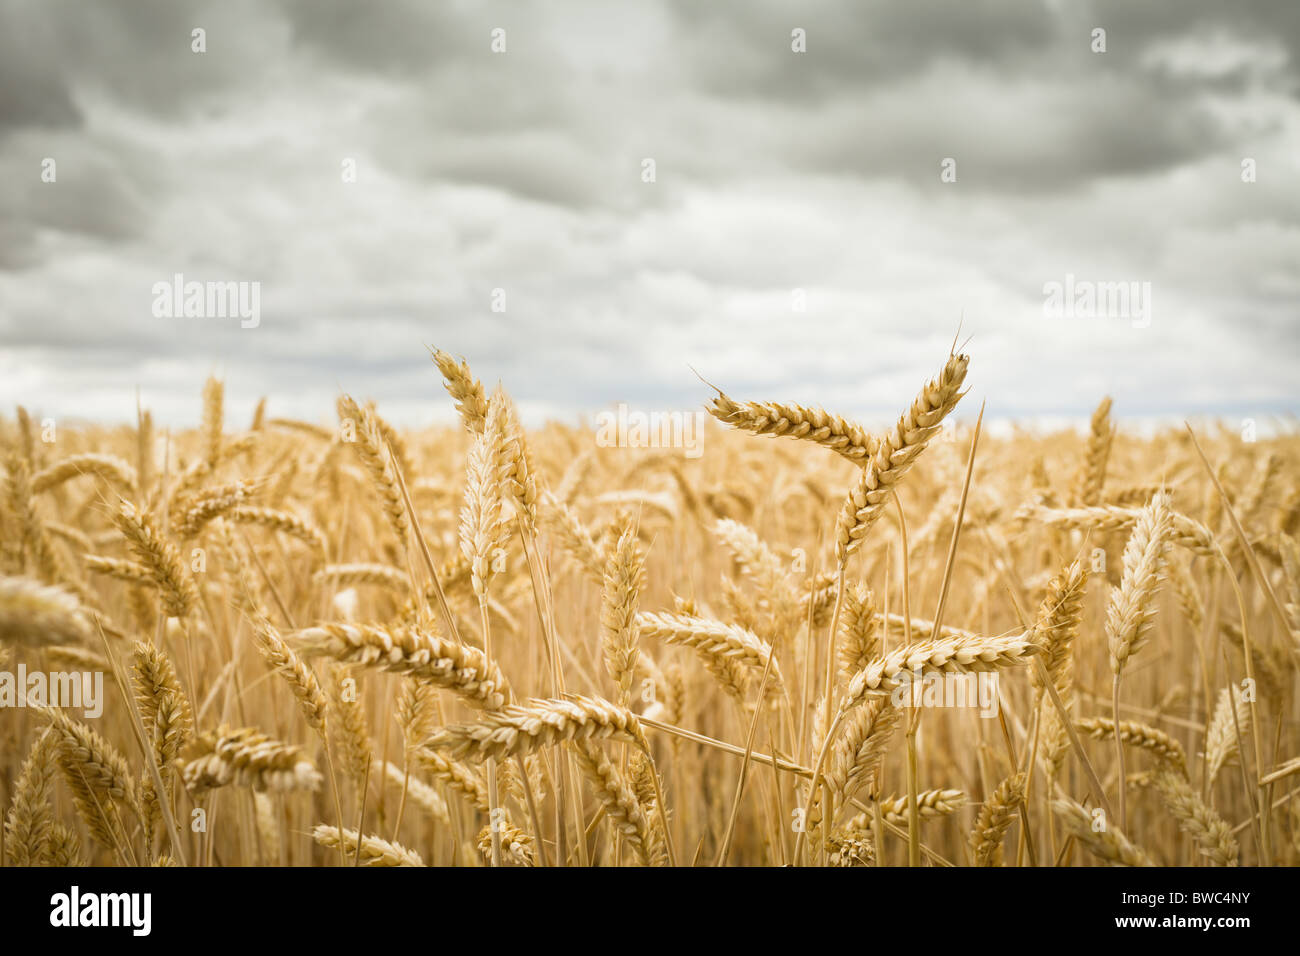 Field of Crops - Stock Image